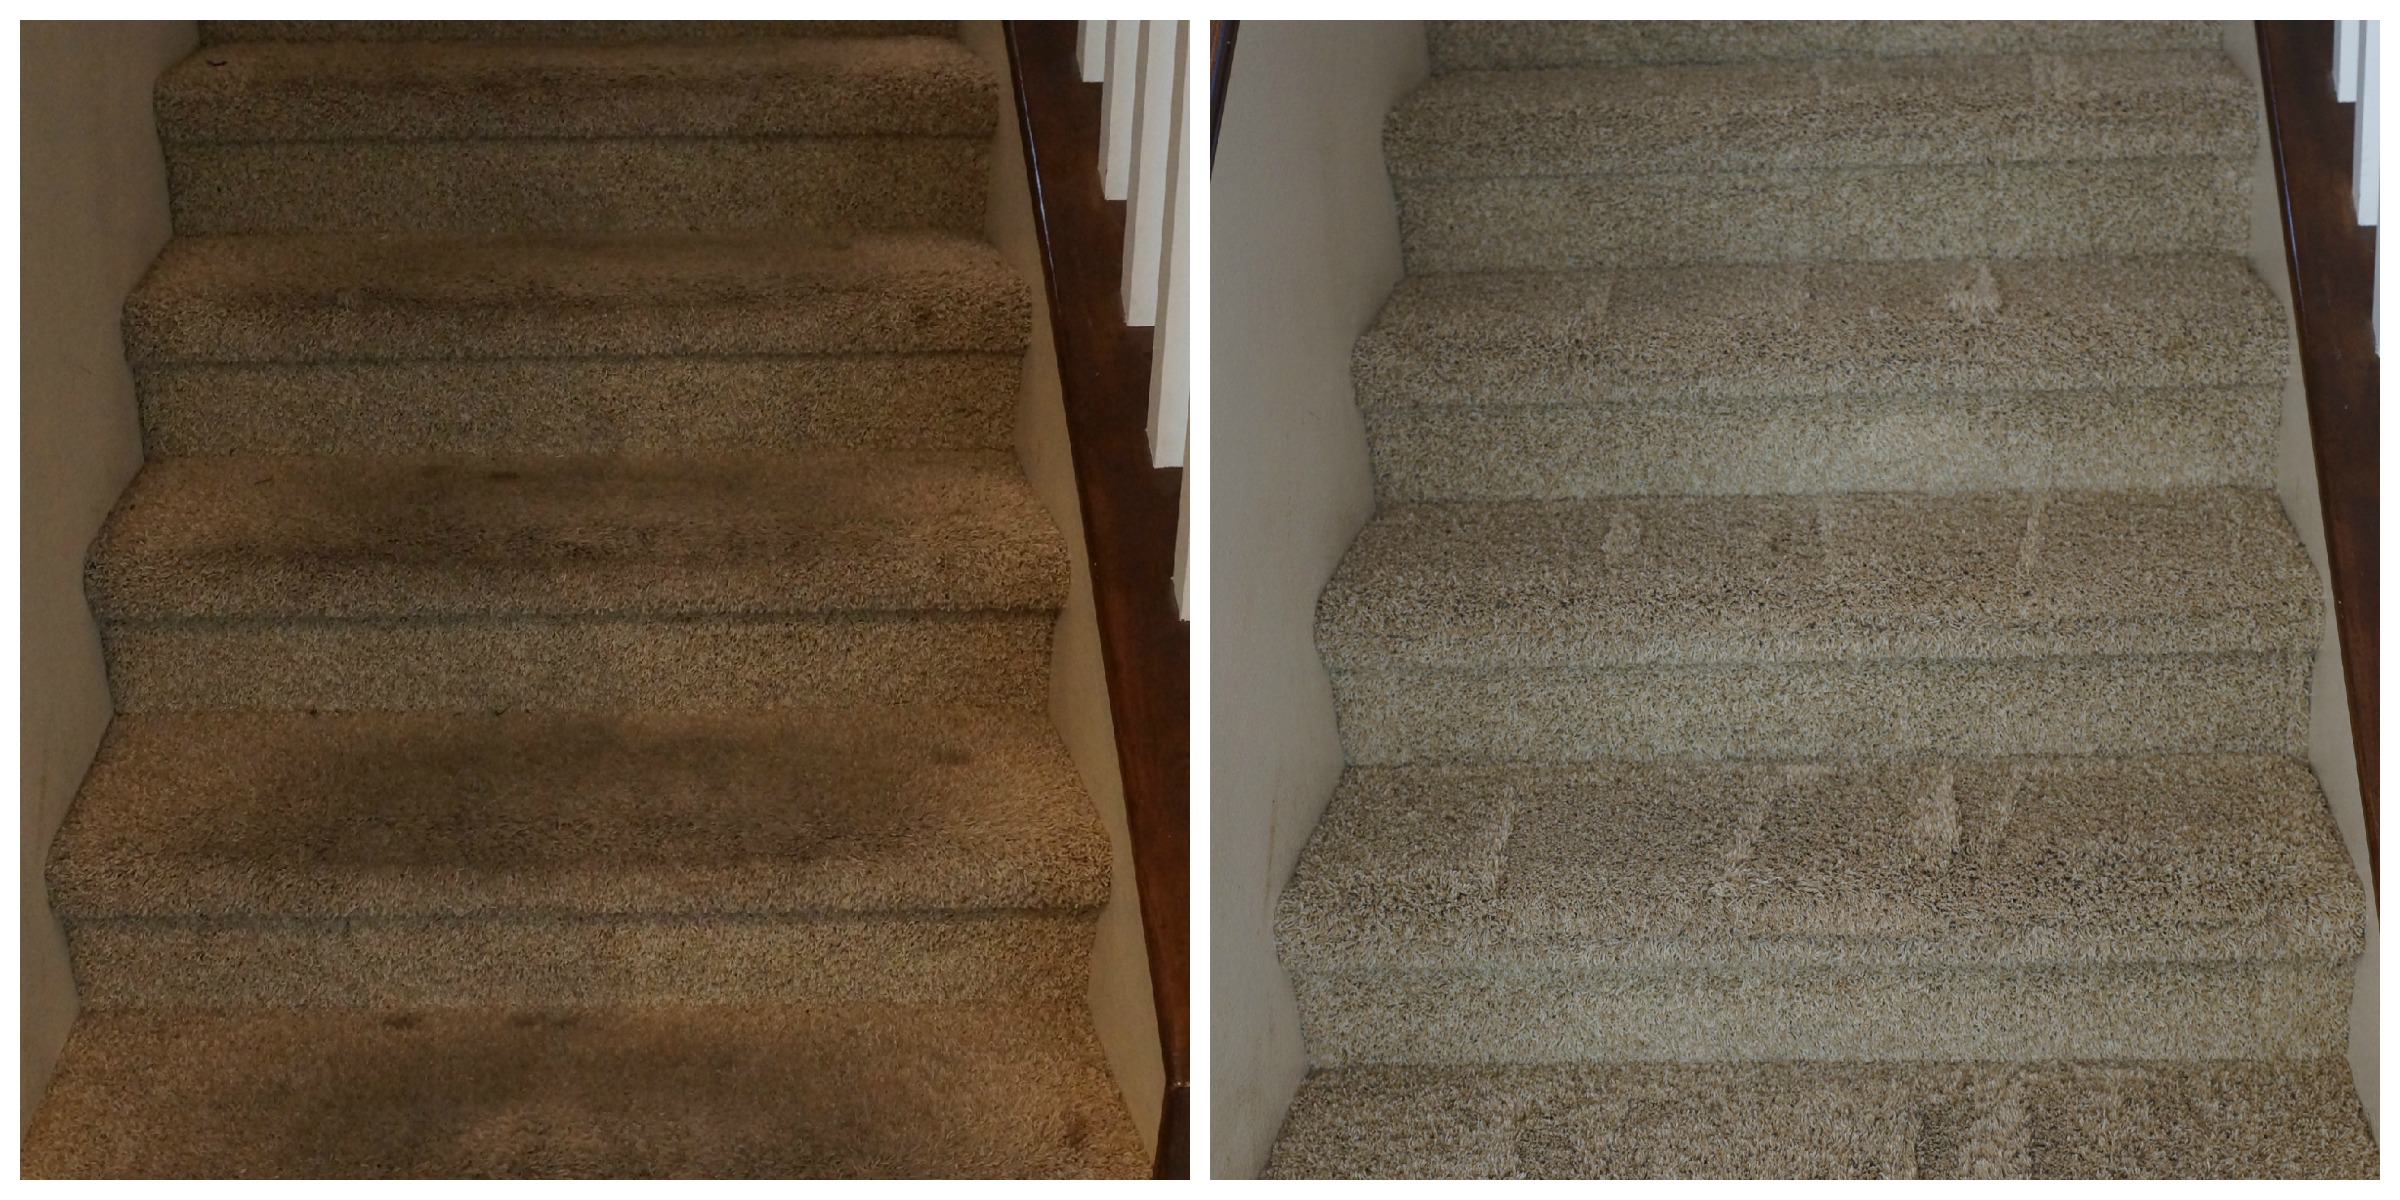 How to clean your carpets without chemicals oc mom blog for Zerorez hardwood floors